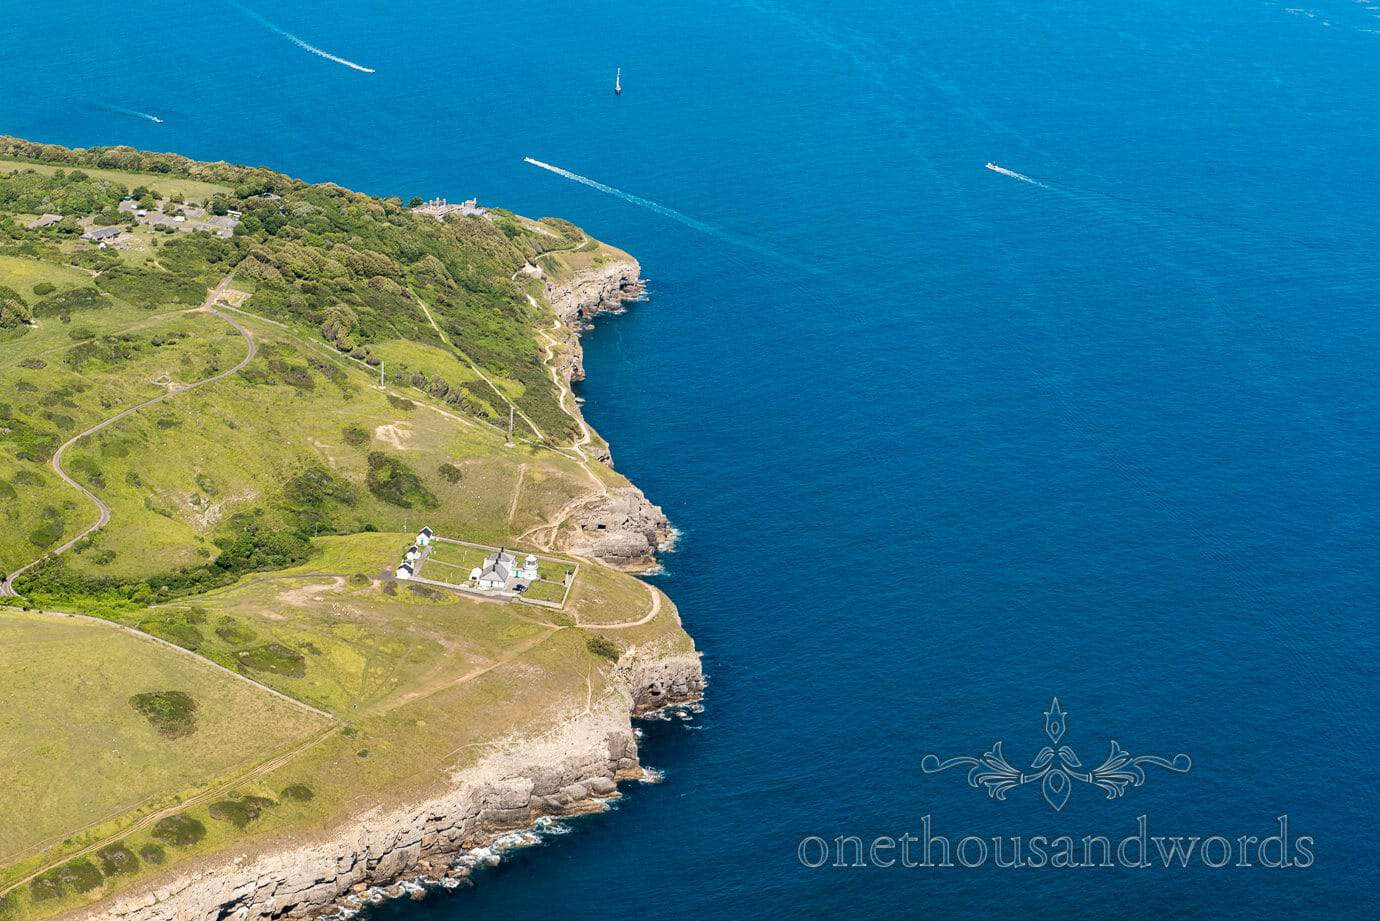 Aerial photograph of Durlston Lighthouse and coastline from wedding helicopter